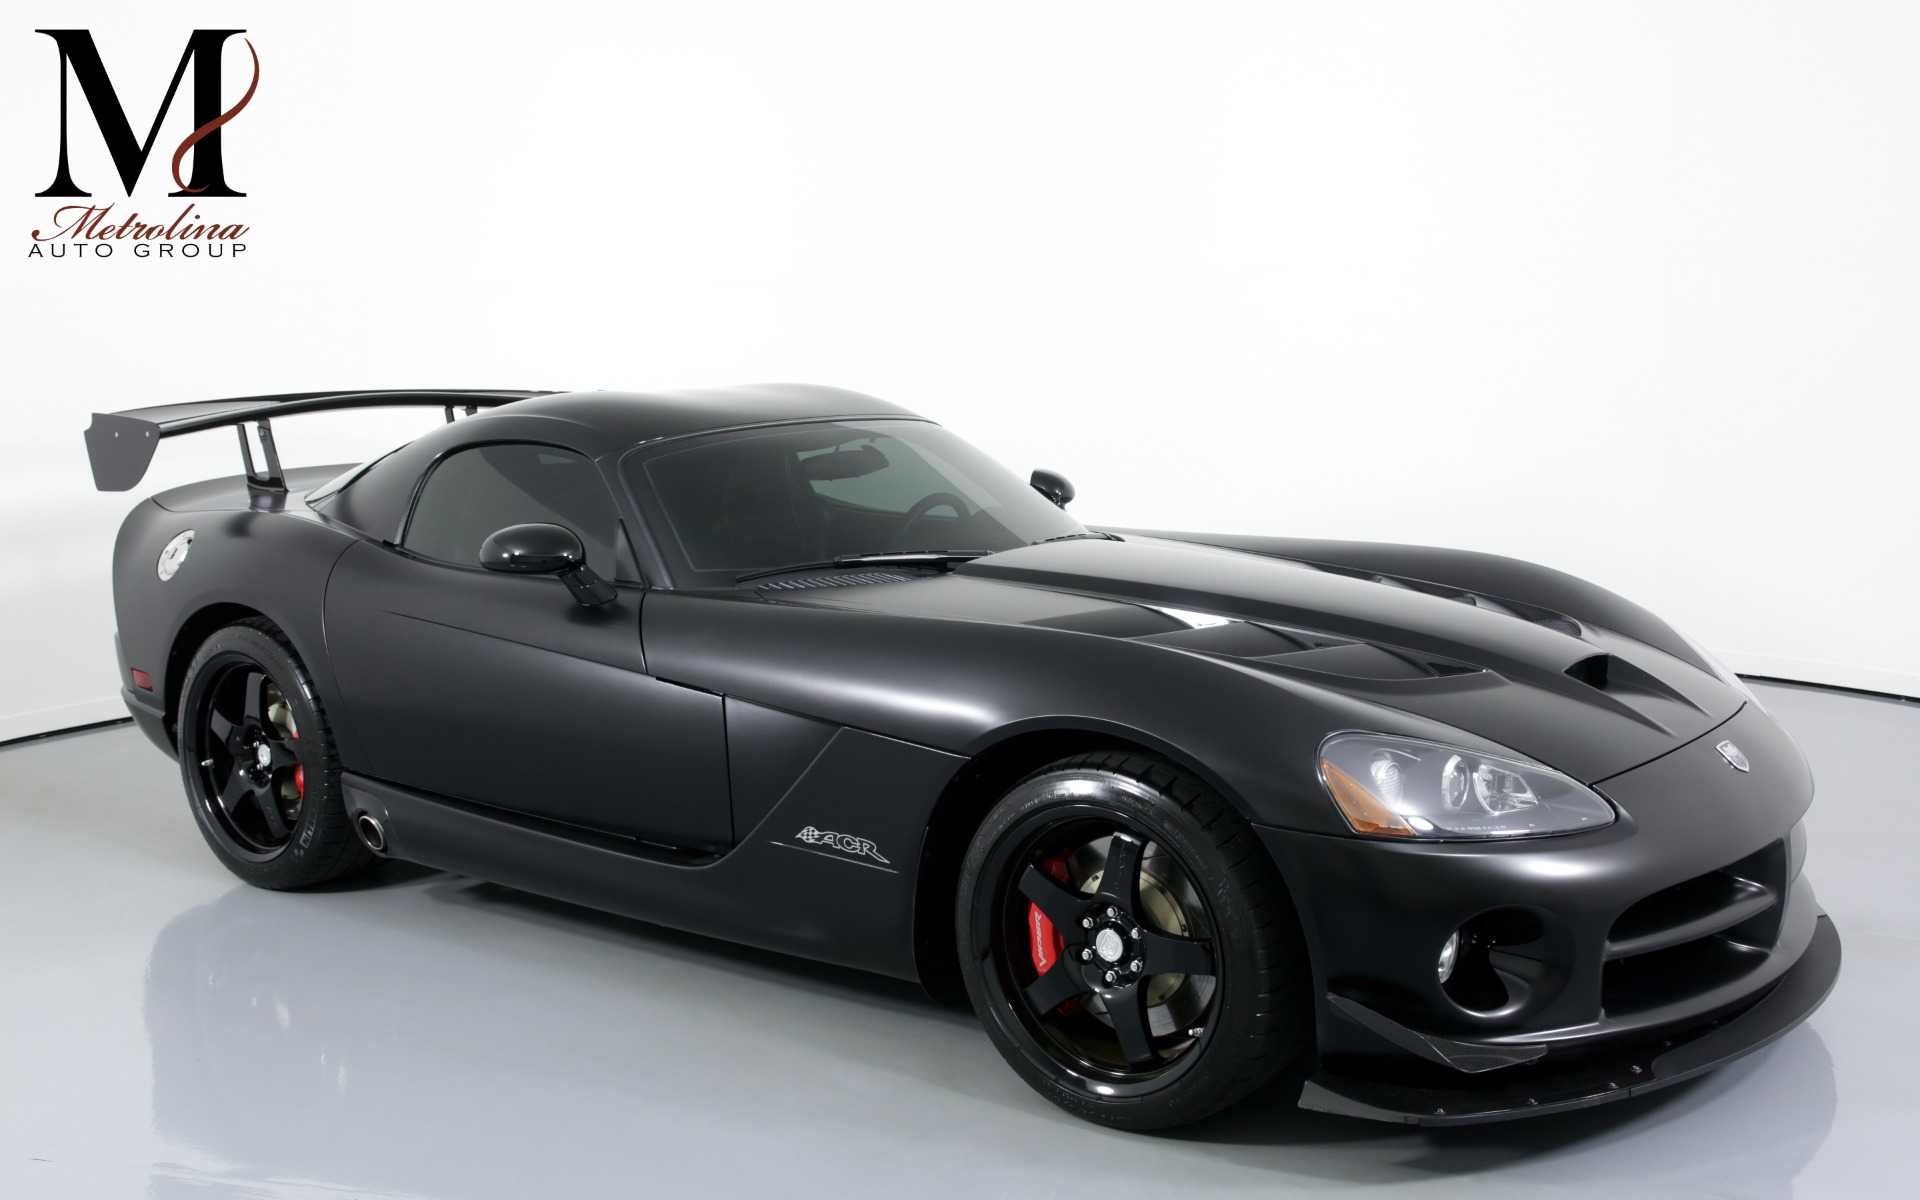 Used 2008 Dodge Viper SRT-10 for sale $82,996 at Metrolina Auto Group in Charlotte NC 28217 - 1